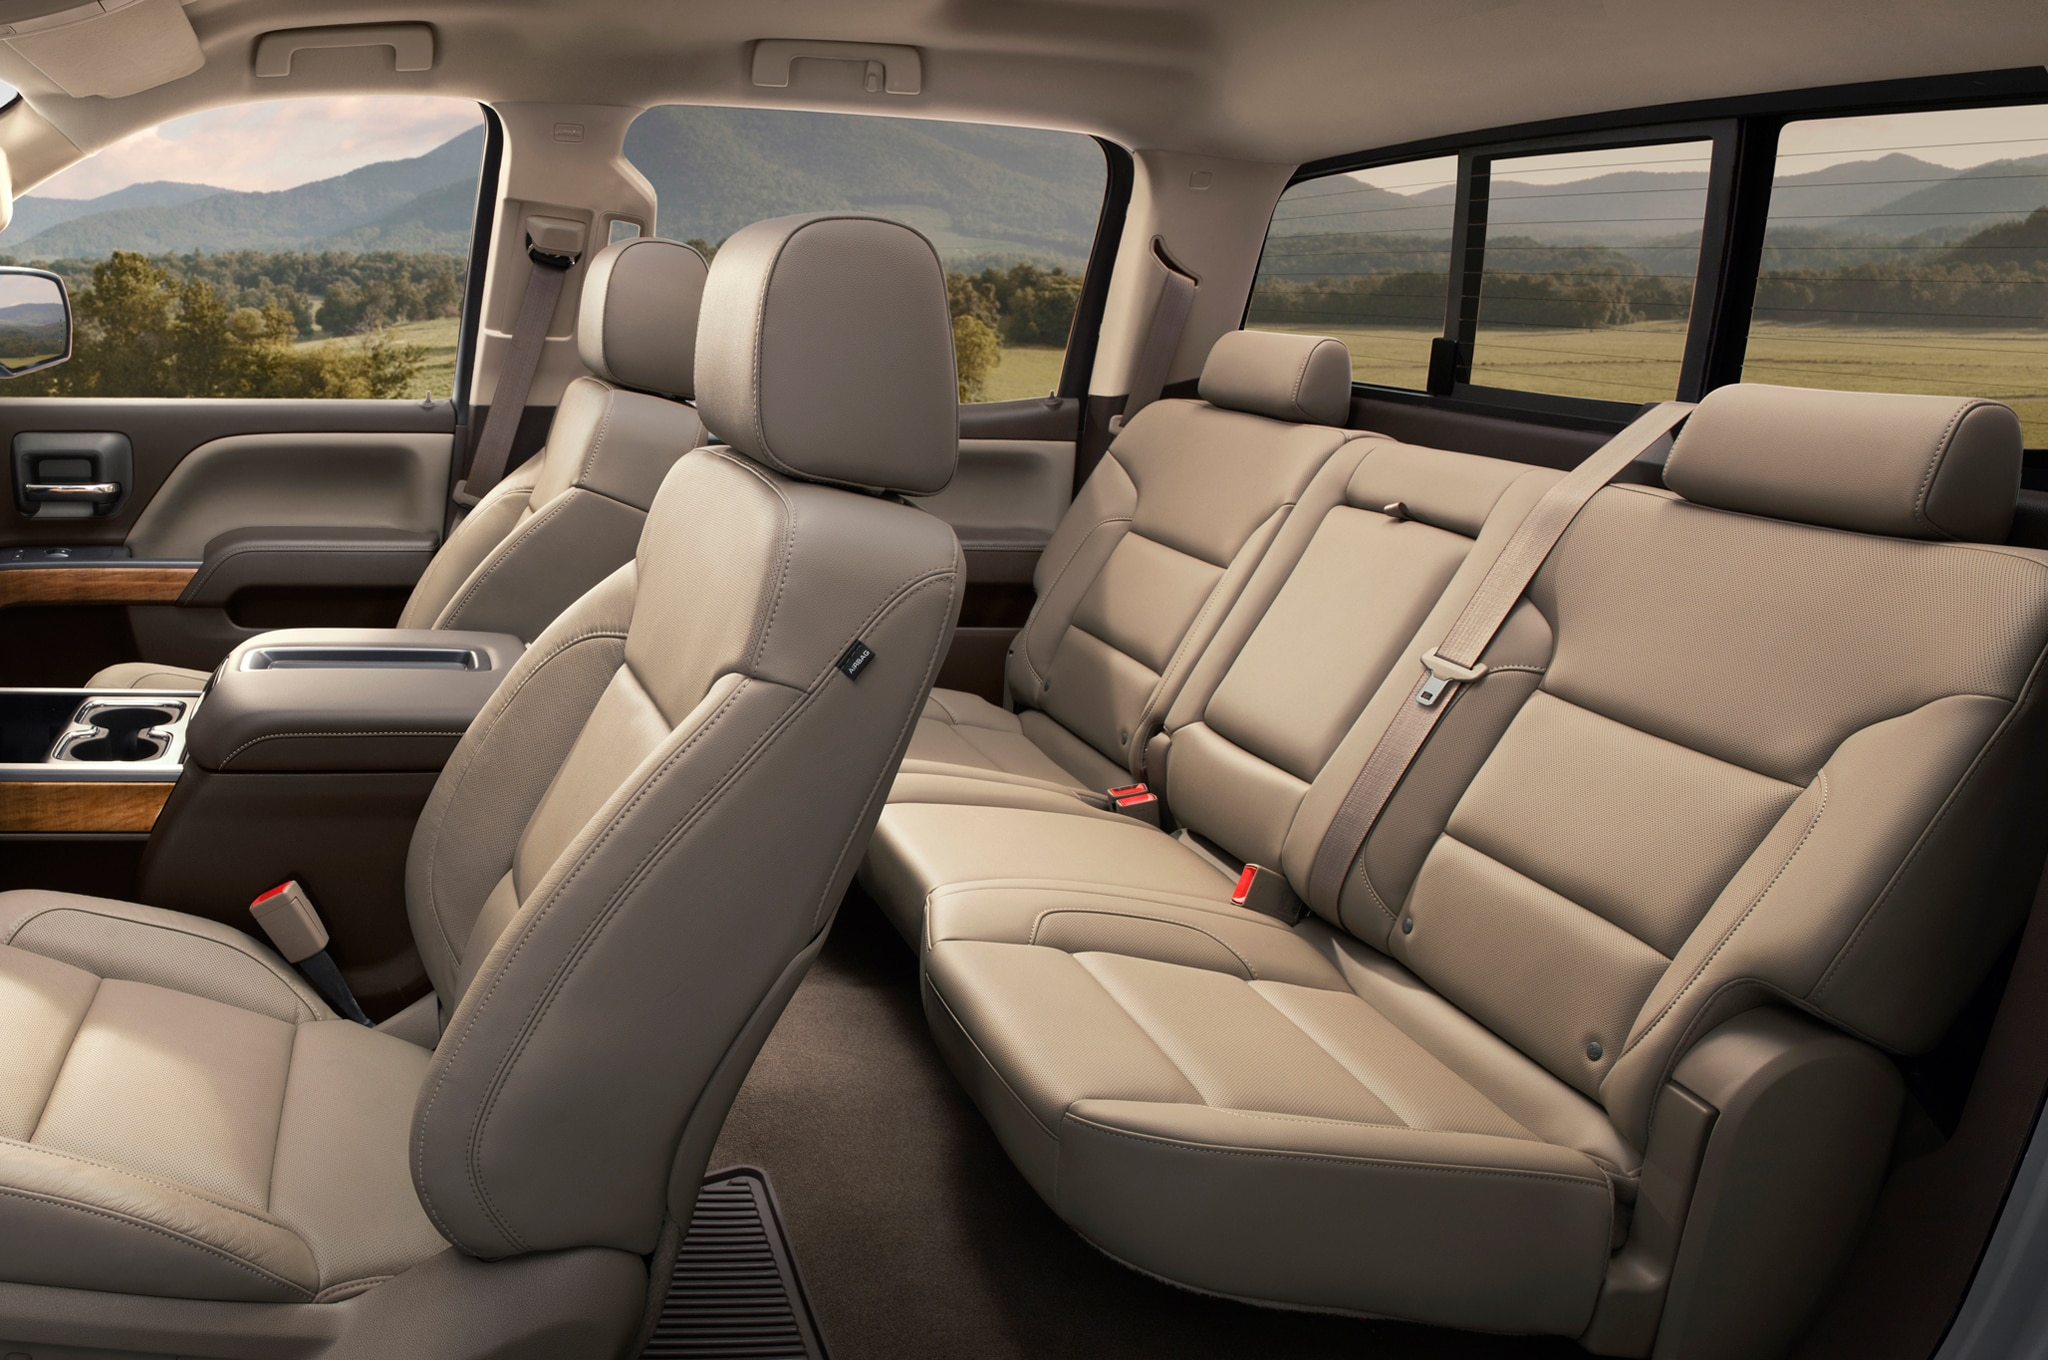 2015 Chevrolet Silverado 3500HD back seats